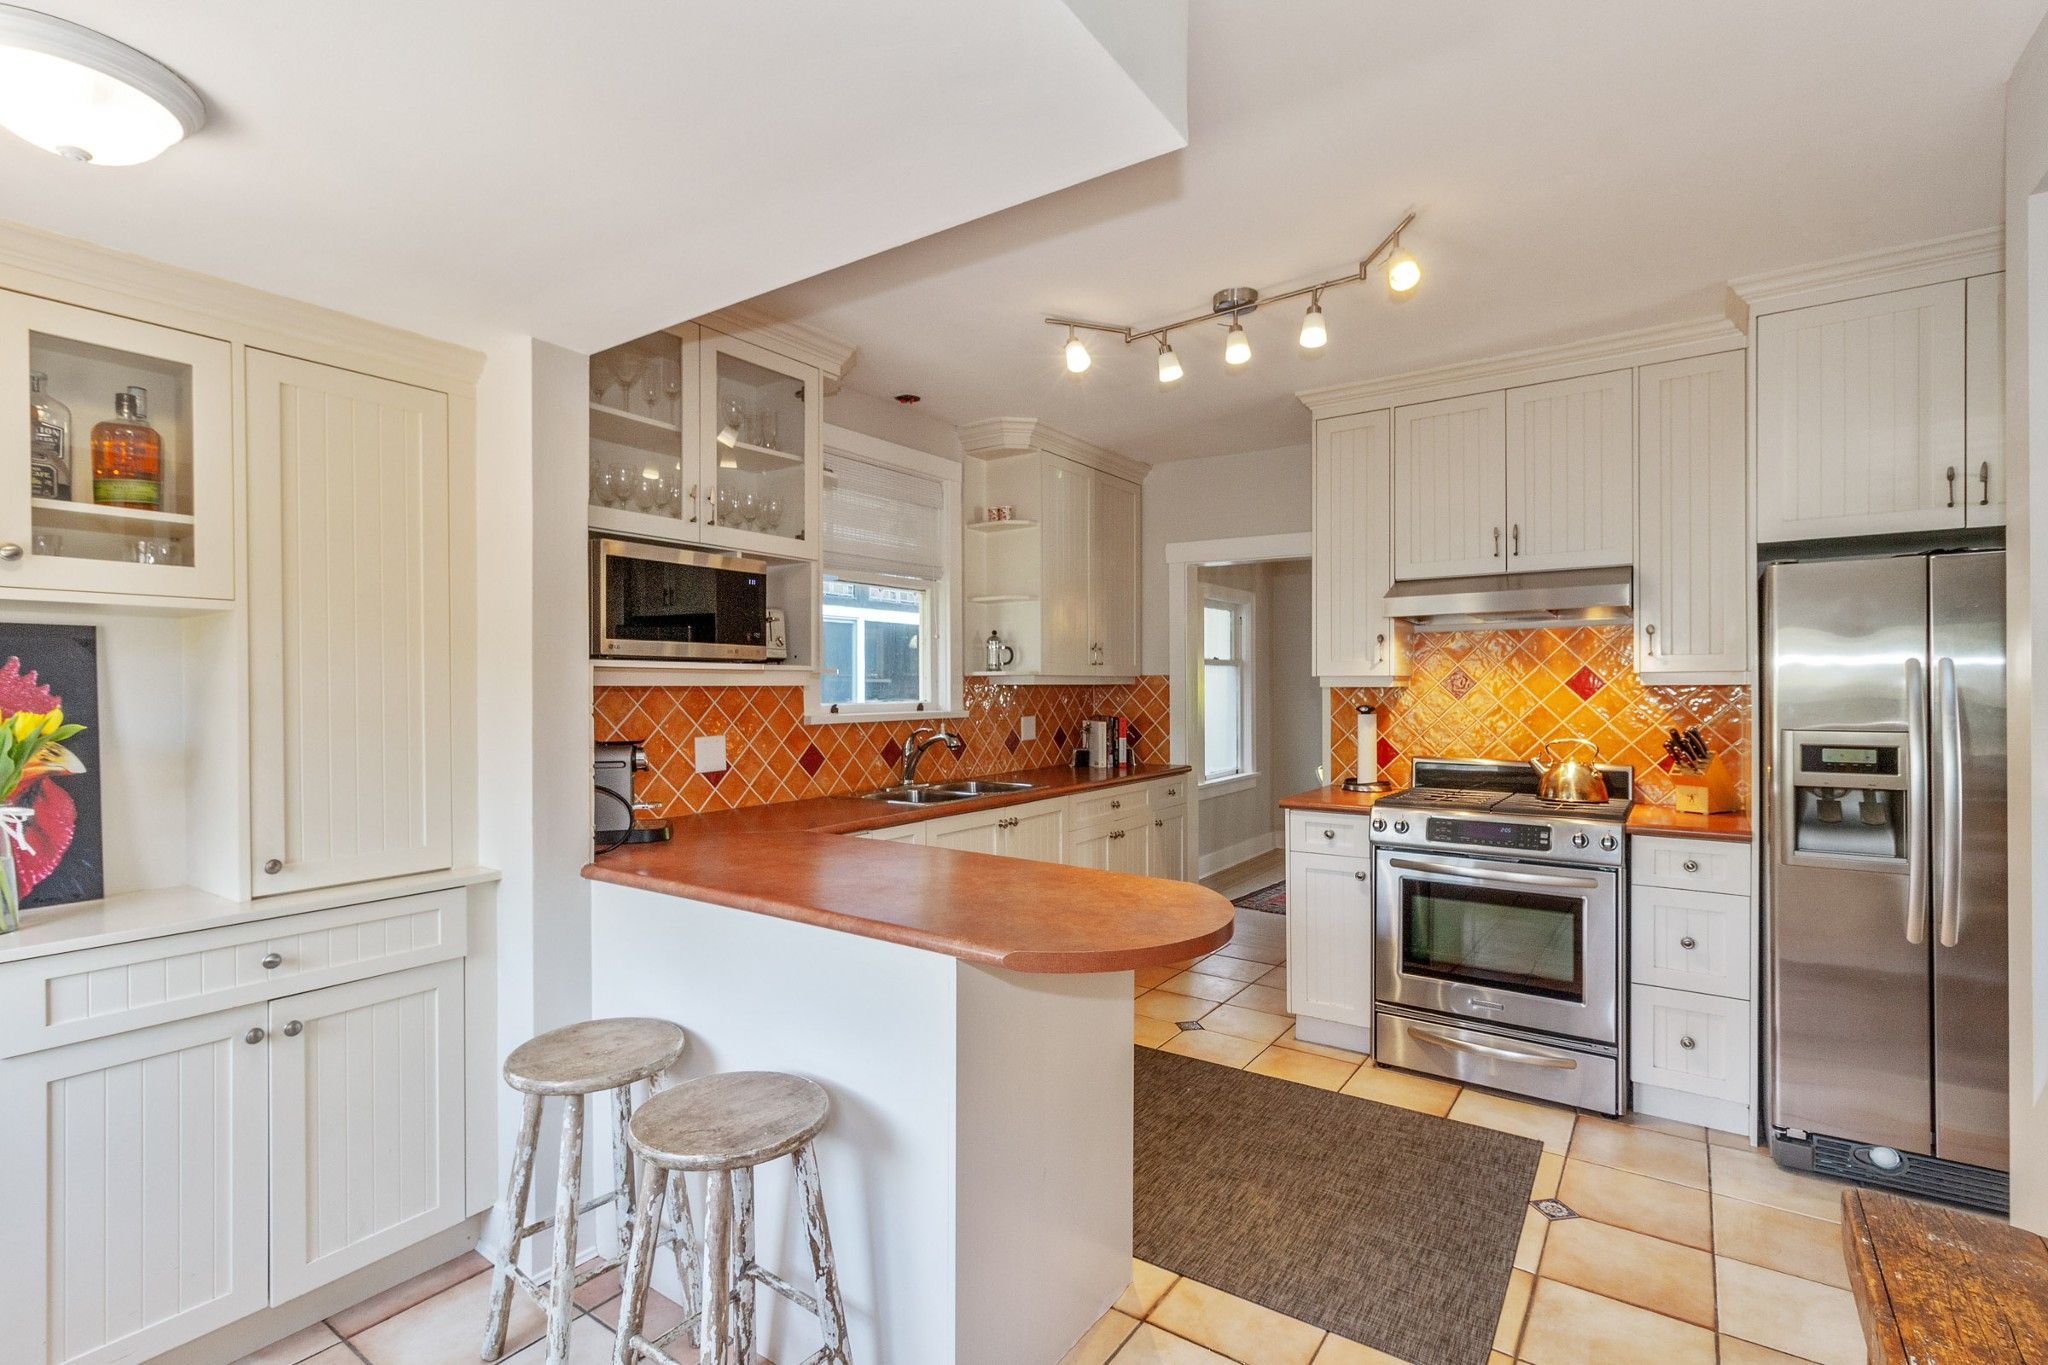 Photo 6: Photos: 3742 ONTARIO Street in Vancouver: Main House for sale (Vancouver East)  : MLS®# R2580004